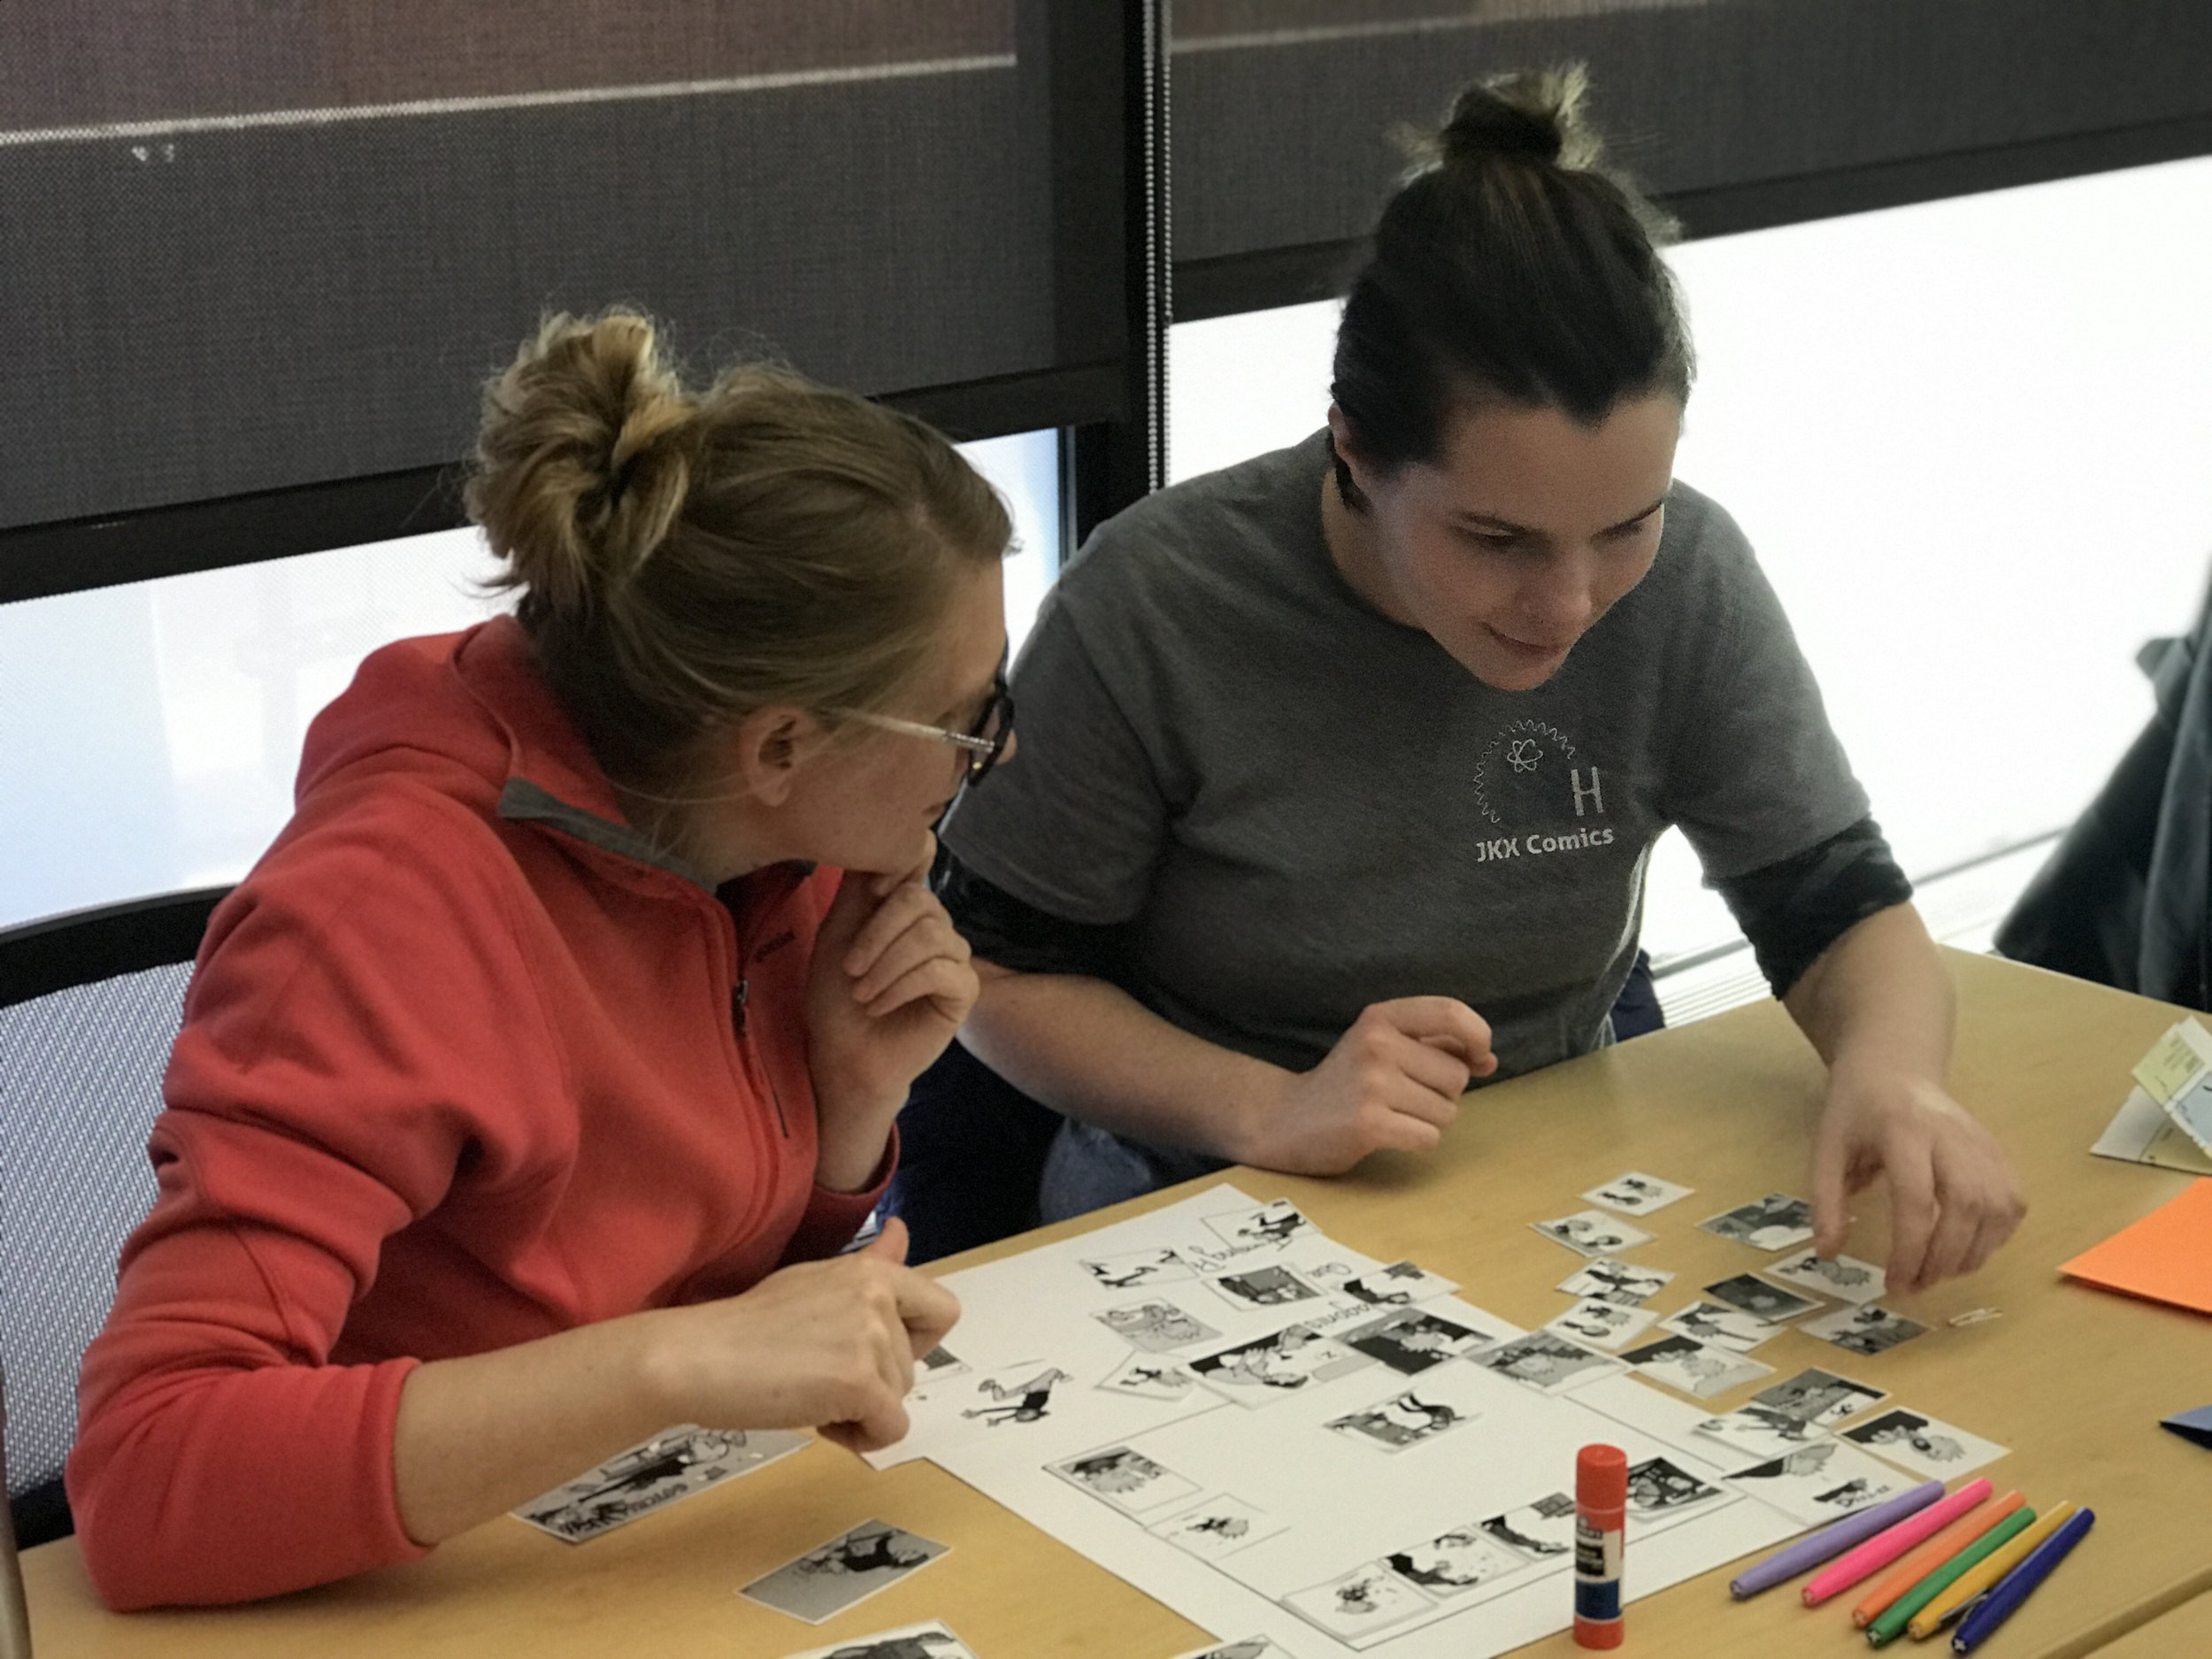 Hallie and Stephanie at the Gaining STEAM! cartooning workshop